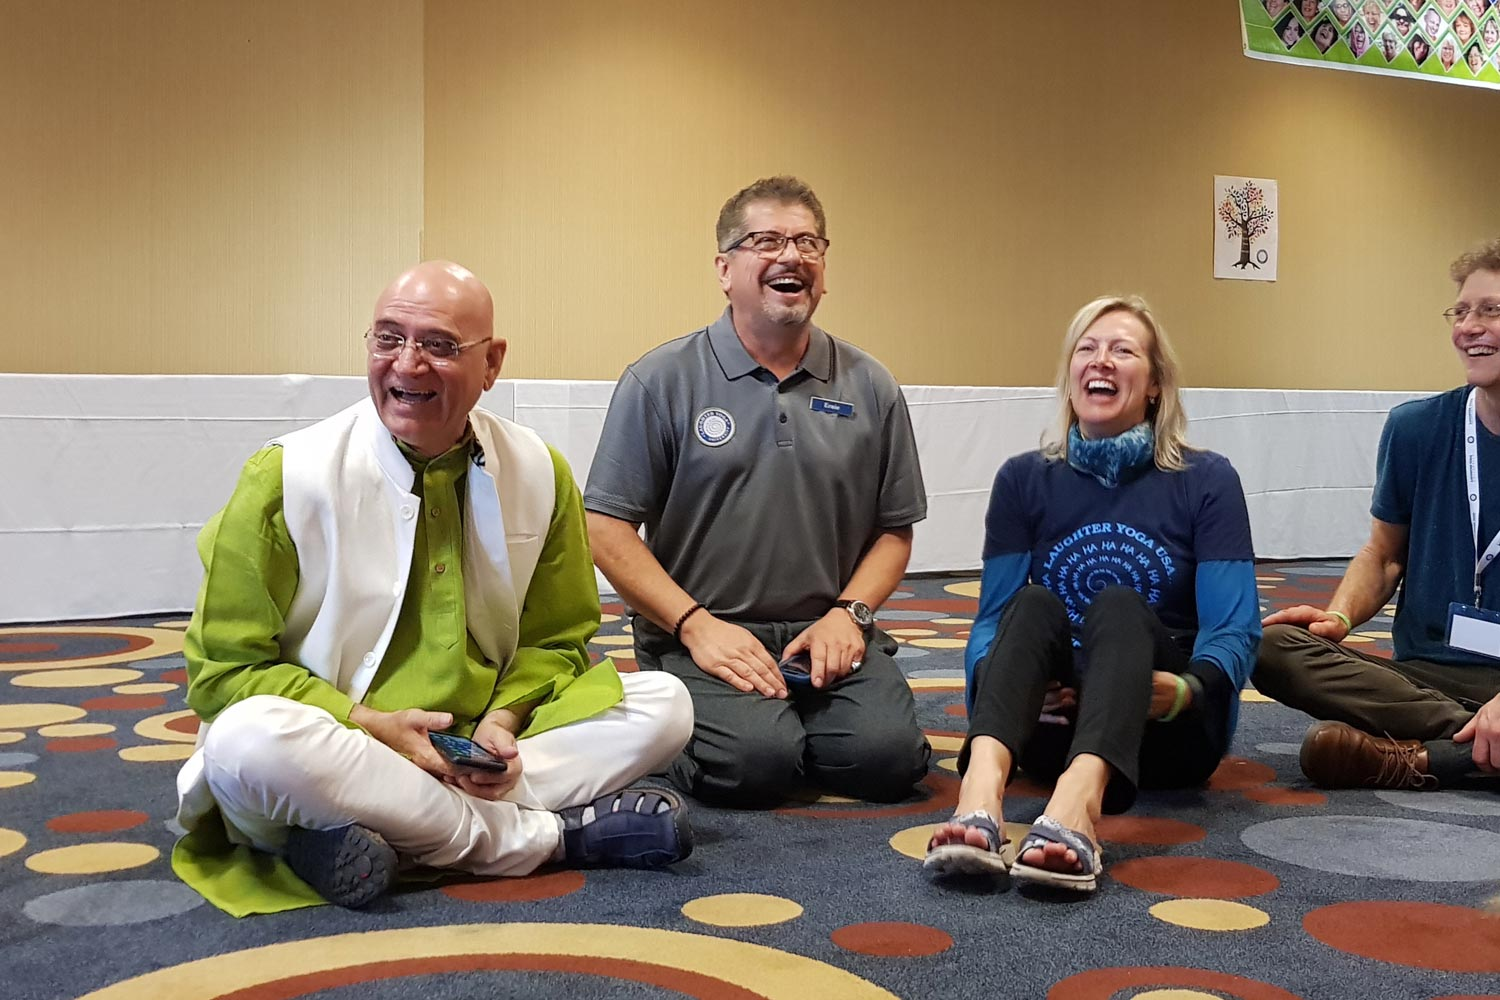 The Laughter Lawyer Corporate Wellness Retreat